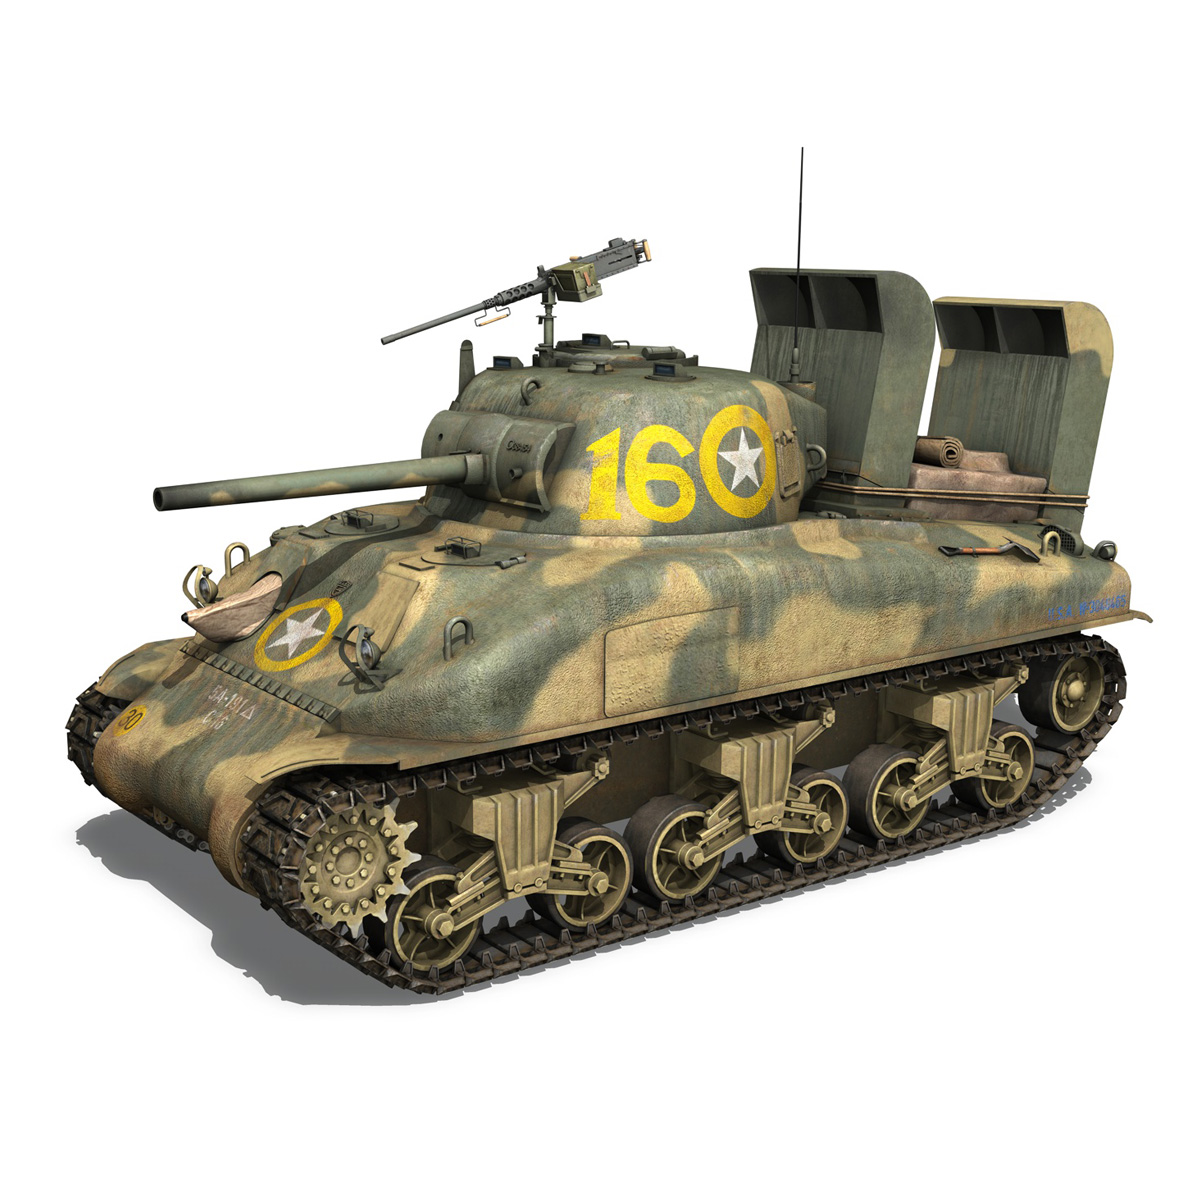 m4a1 sherman – 16 3d model 3ds fbx c4d lwo obj 273052